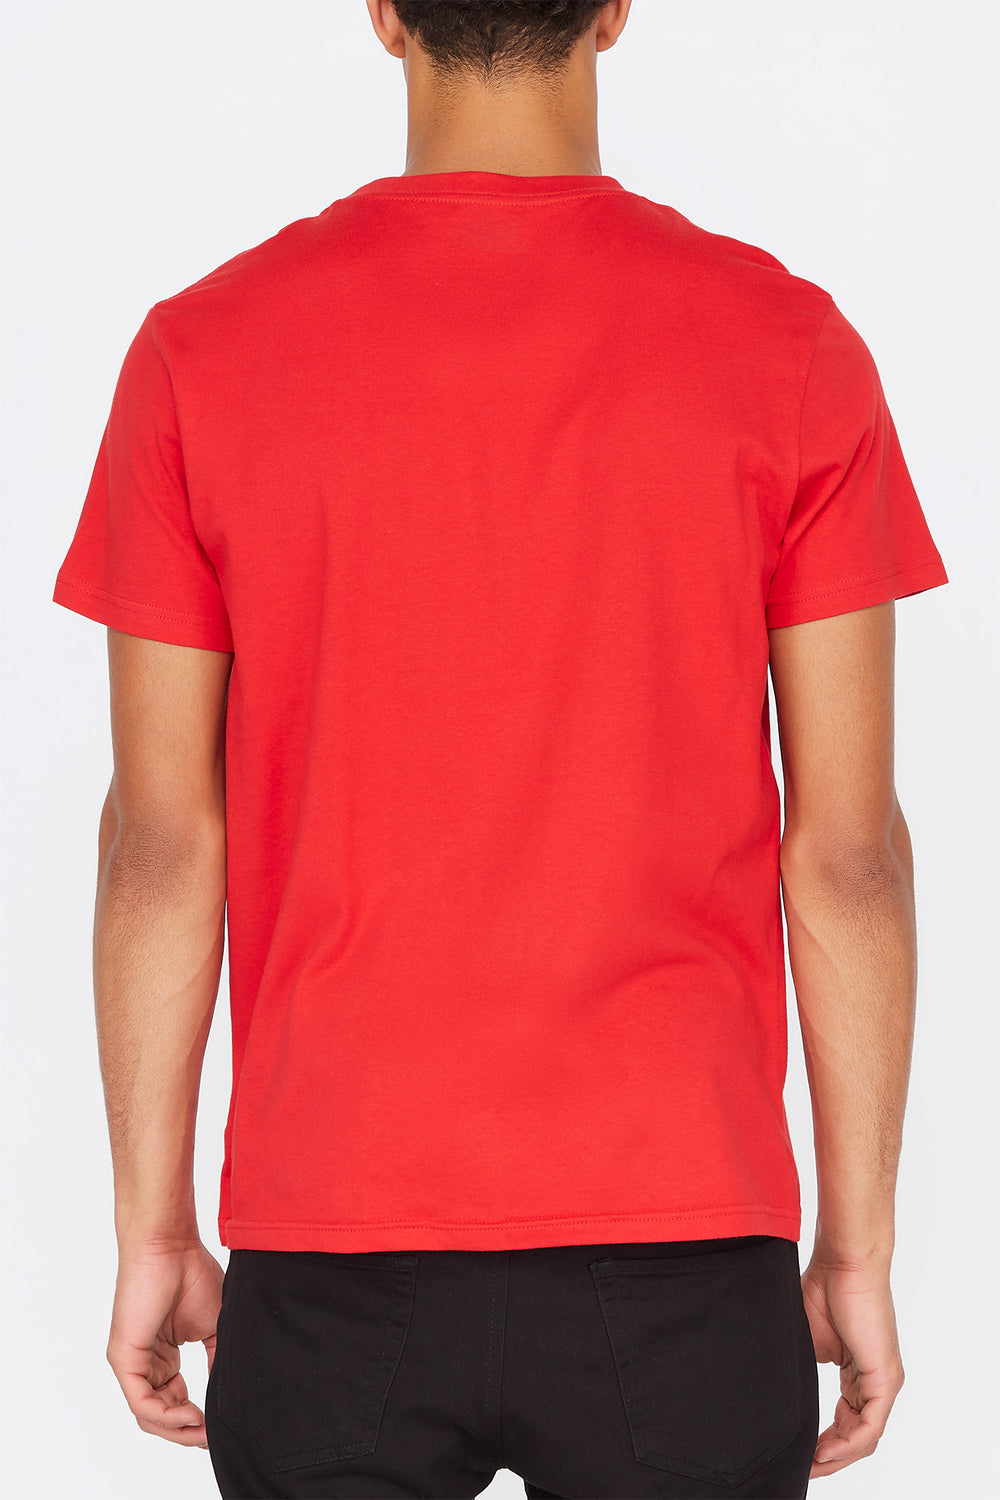 T-Shirt Logo Zoo York Homme Rouge